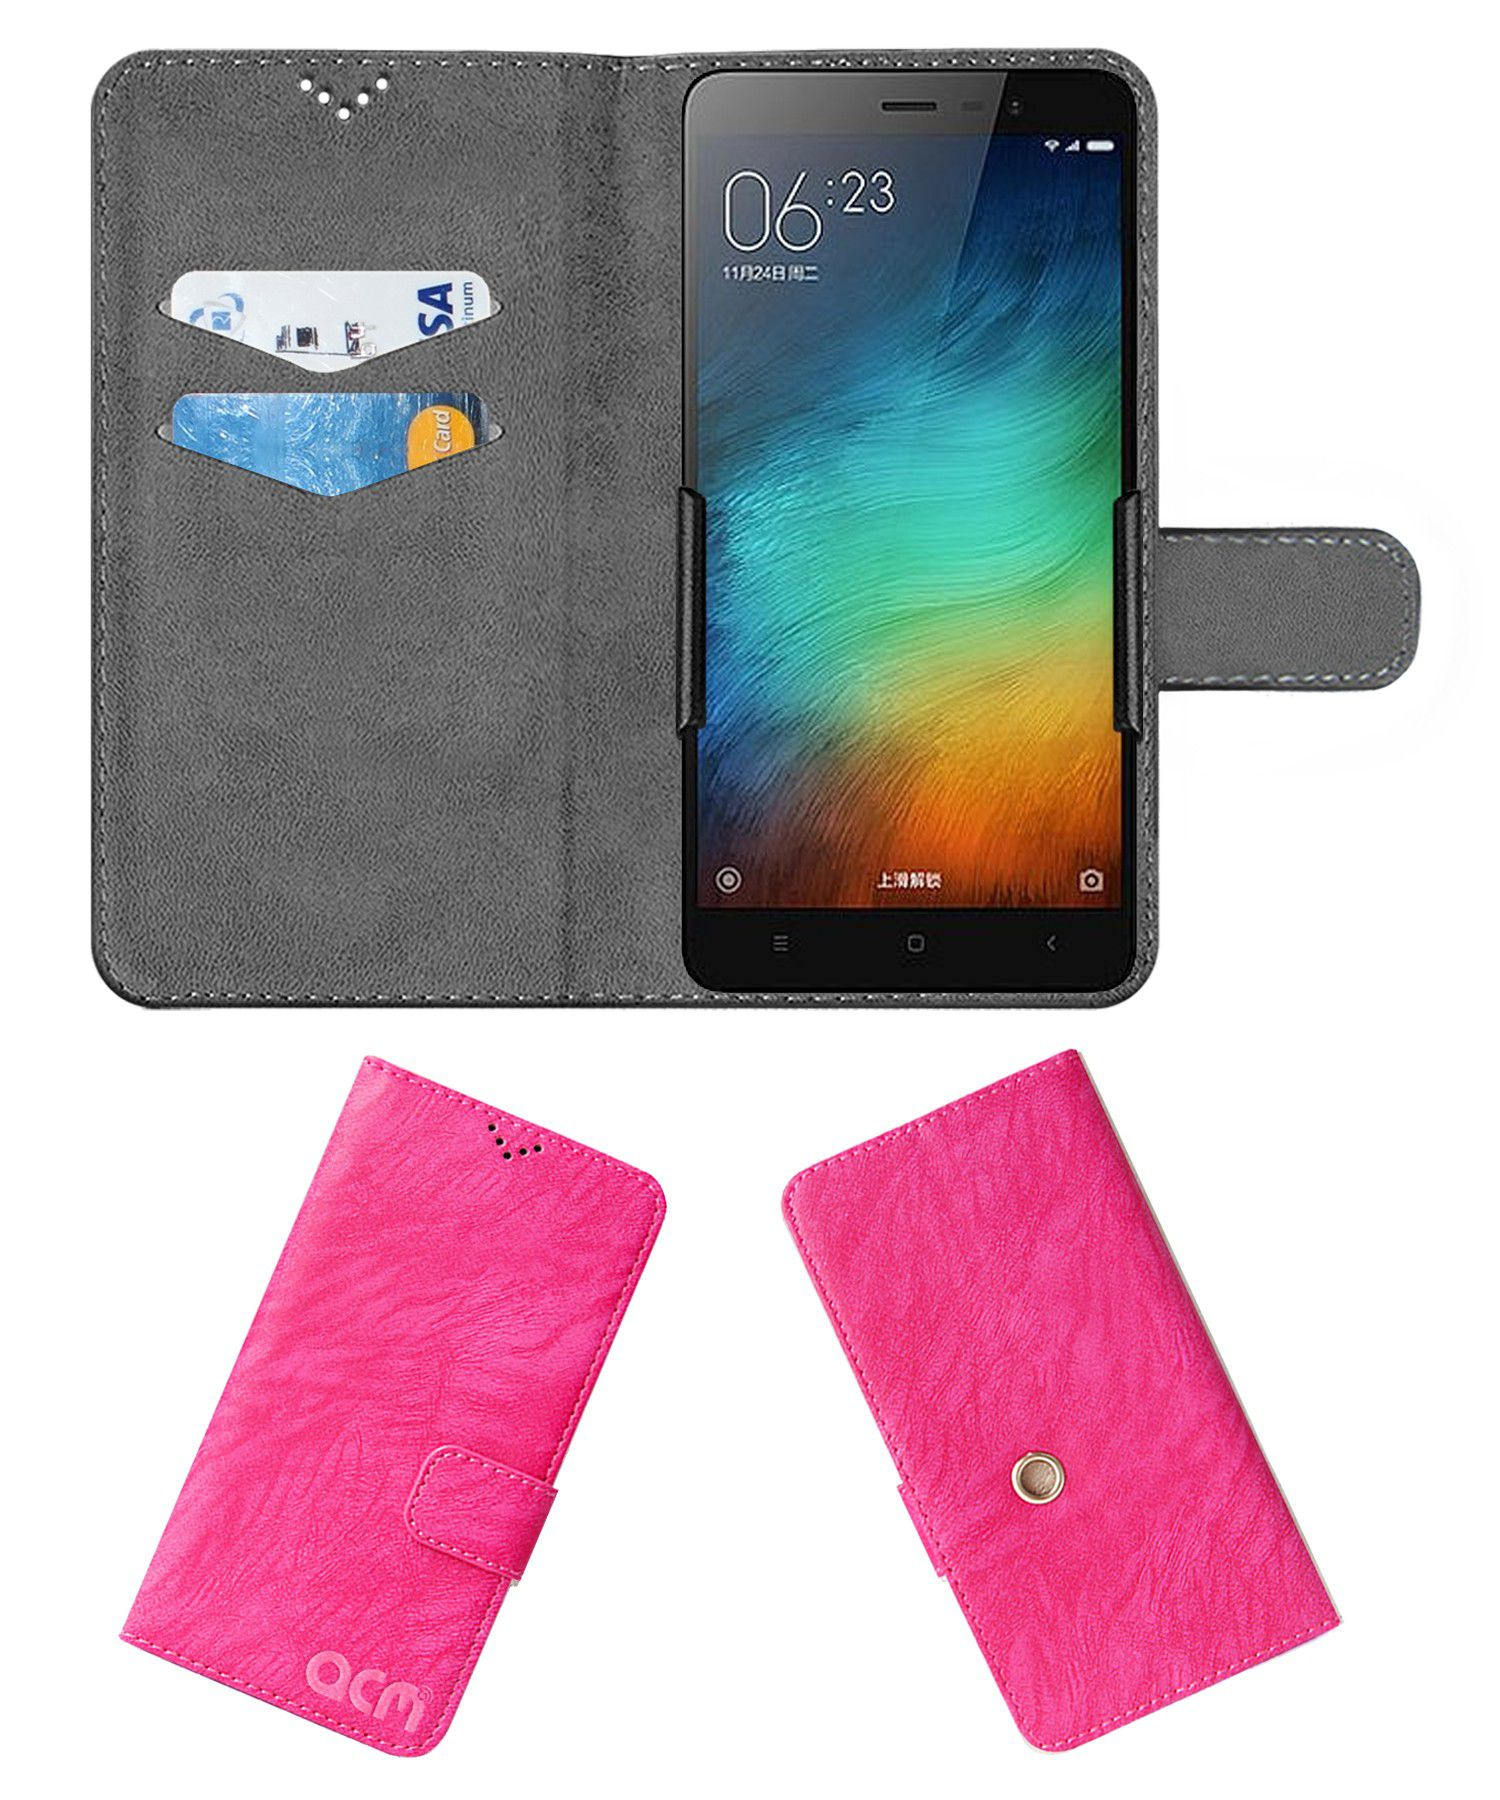 Xiaomi Redmi 3s Plus Flip Cover by ACM - Pink Clip holder to hold your mobile securely